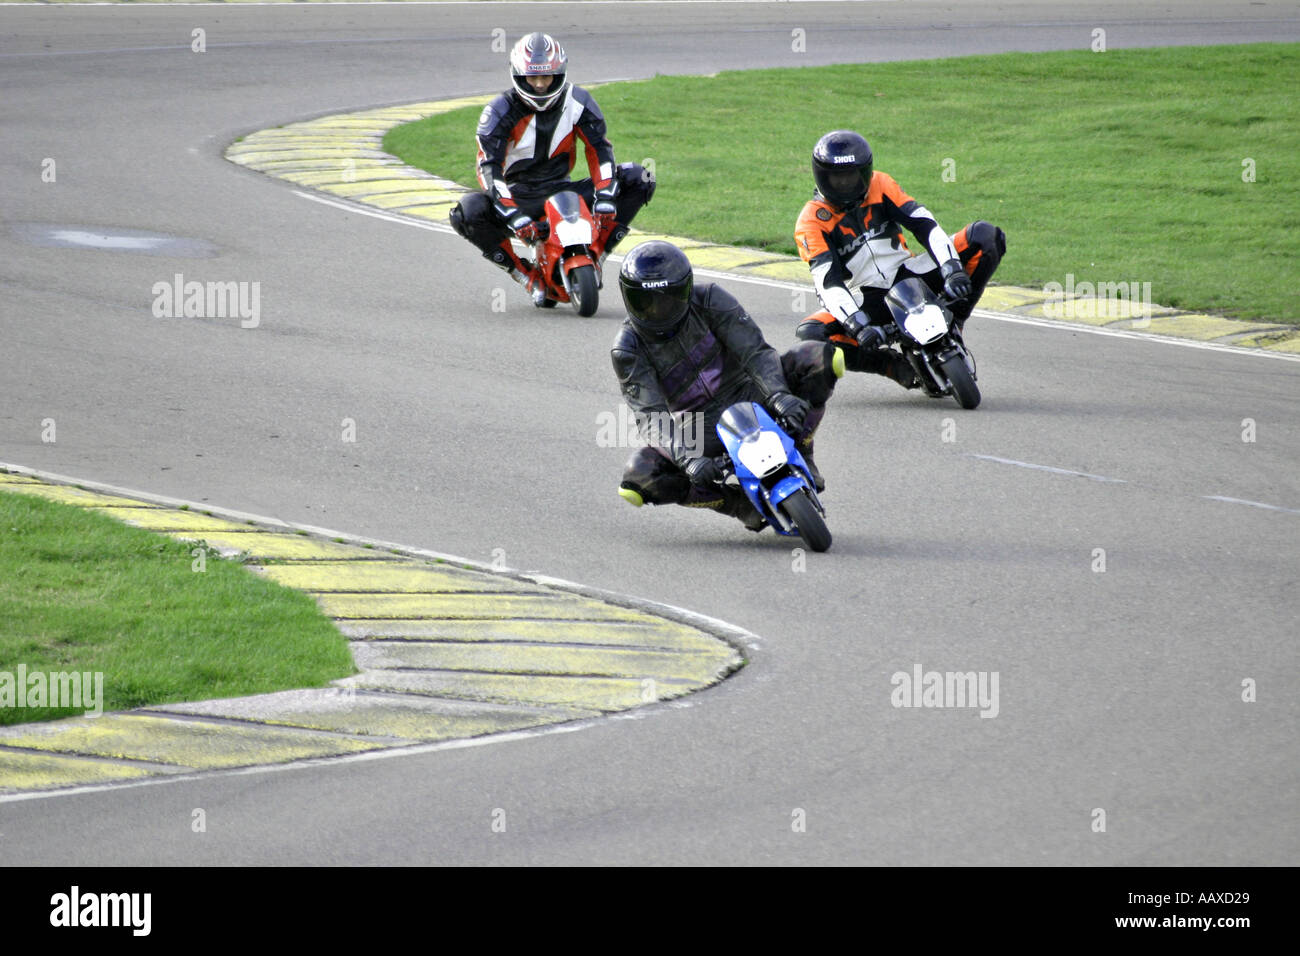 Small Tiny Mini Moto Minimoto Bike Motorbike Motorcycle Monkey Monkeybike  Bike Race Racetrack Track Knee Down